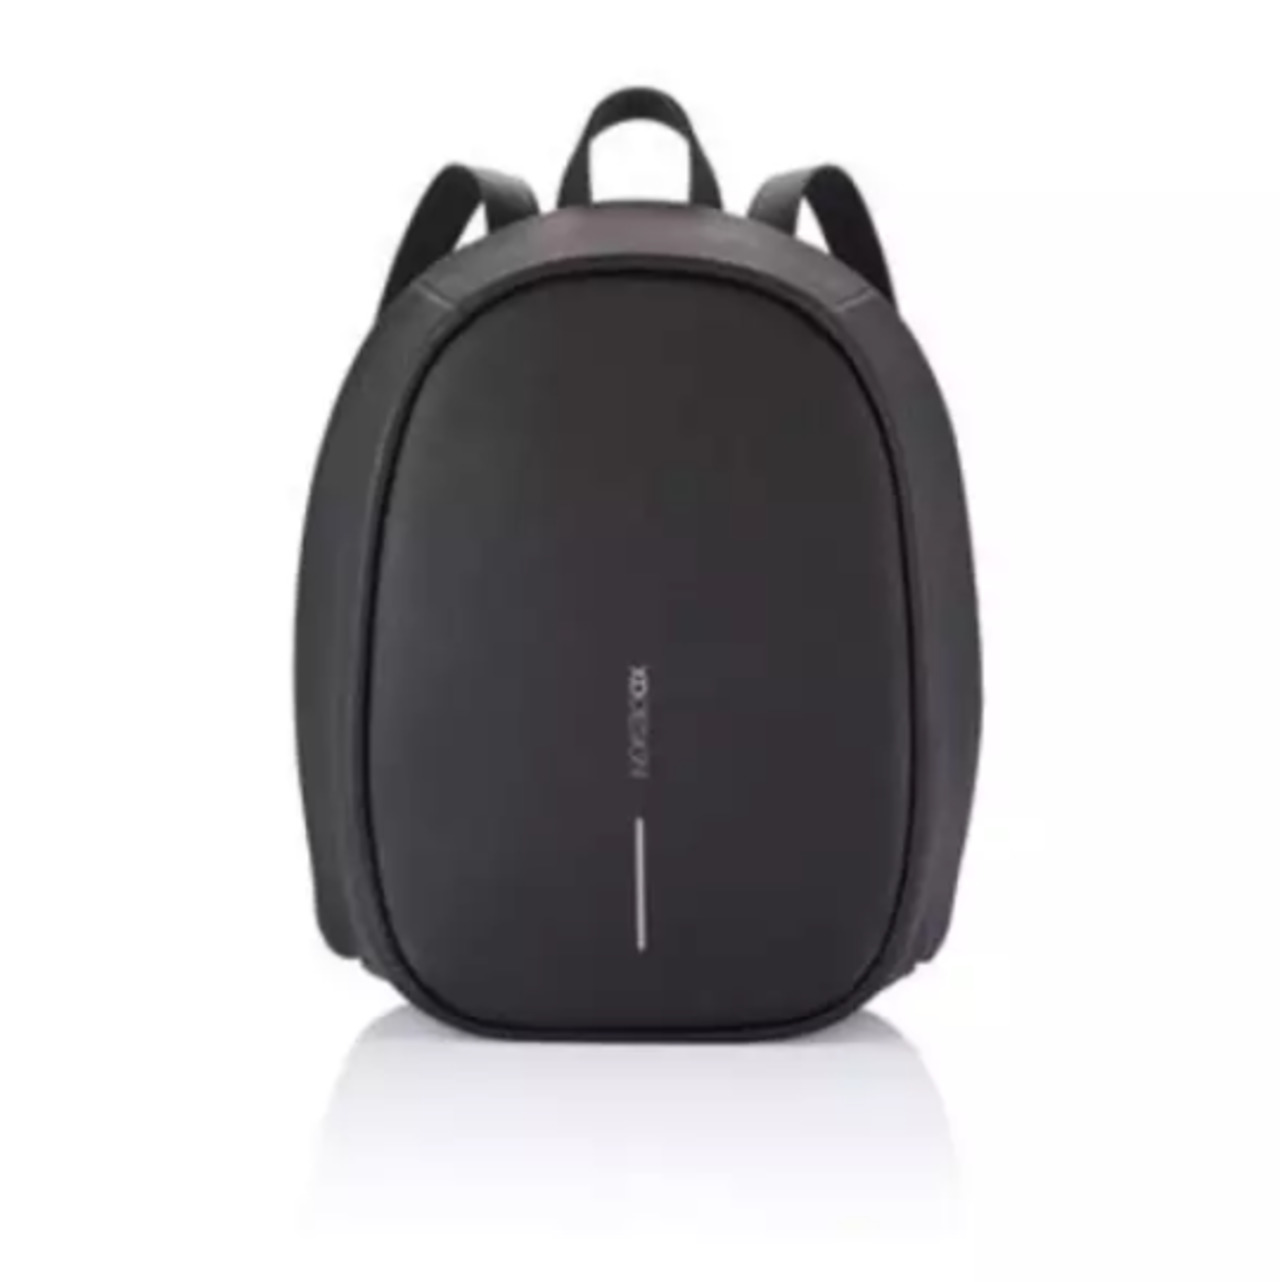 Bobby Elle Anti-Theft Backpack 50% off